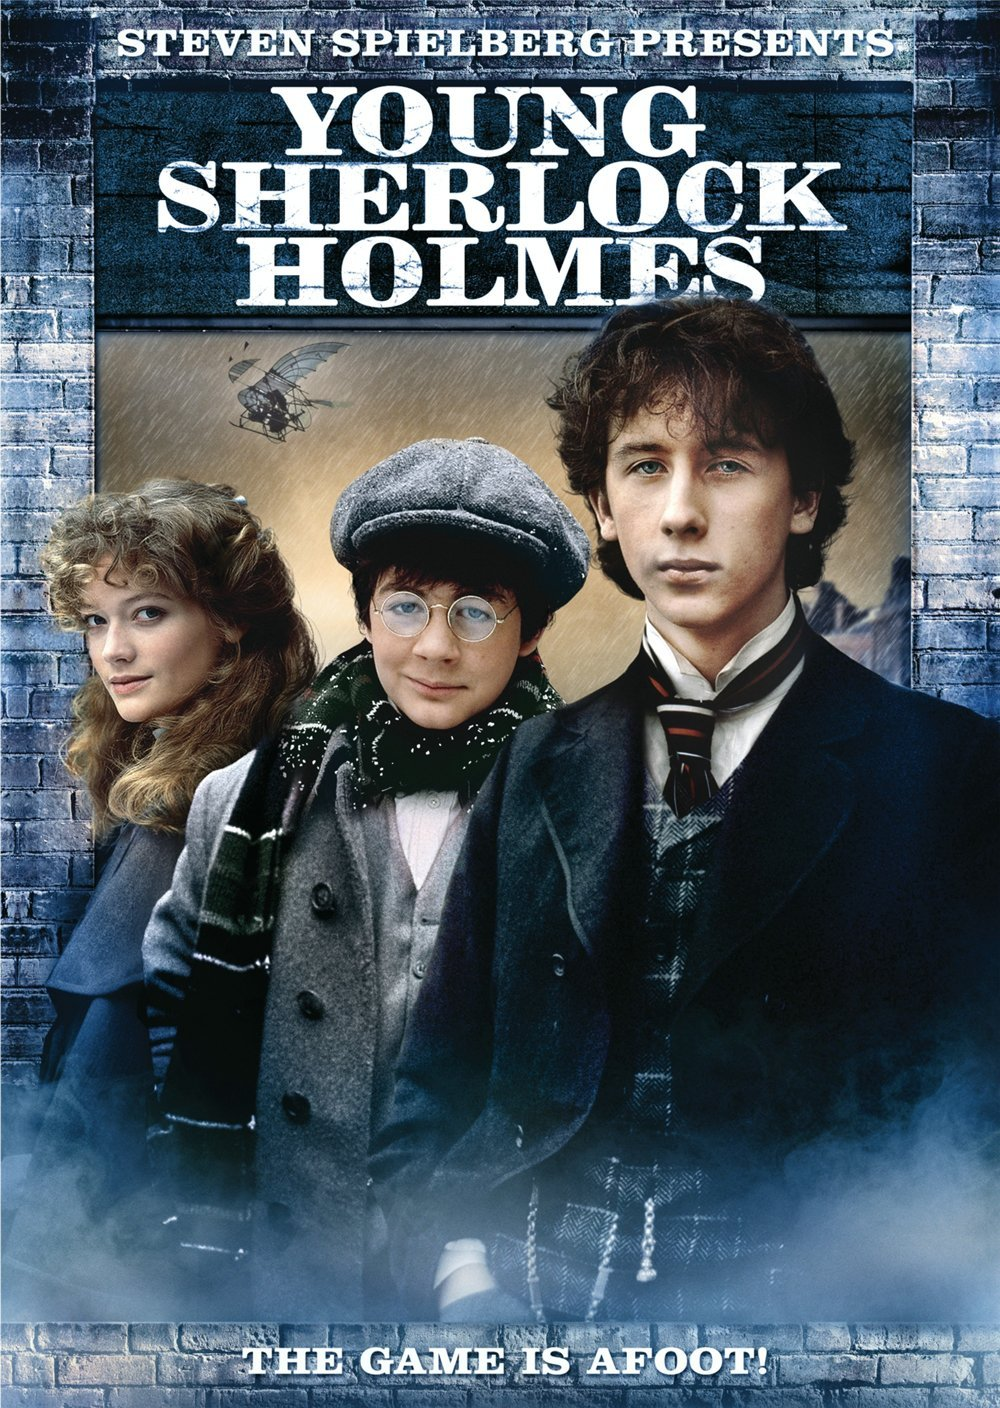 a summary of the adventure film young sherlock holmes Free sherlock holmes analysis the adventure of sherlock holmes - after i said hello to mrs hudson and in the film, young sherlock holmes.